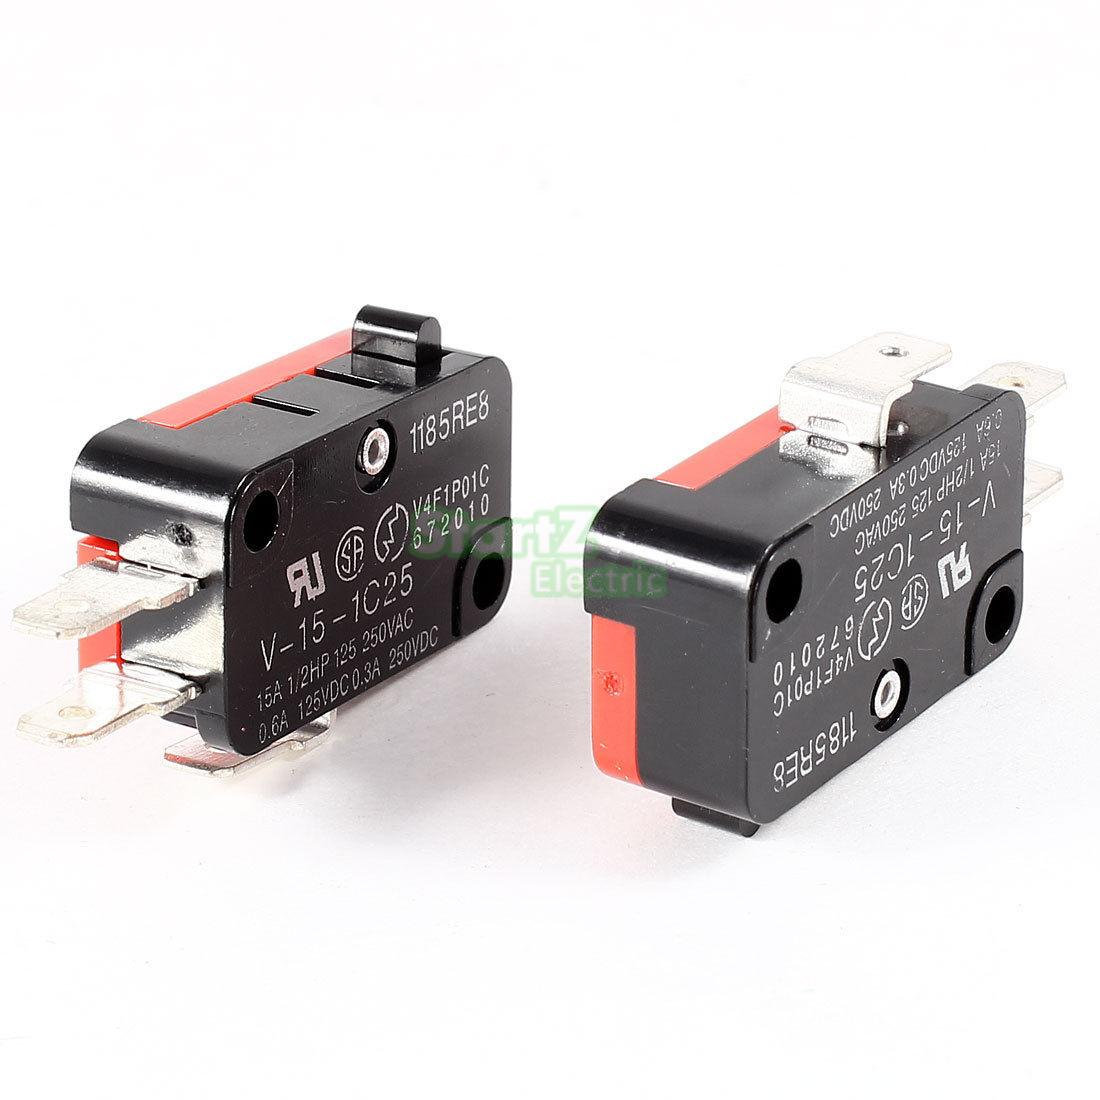 15A 250VAC V-15-1C25 Push Button SPDT 1NO 1NC Micro Switch 10Pcs limit switches plug in side plunger std 1nc 1no spdt